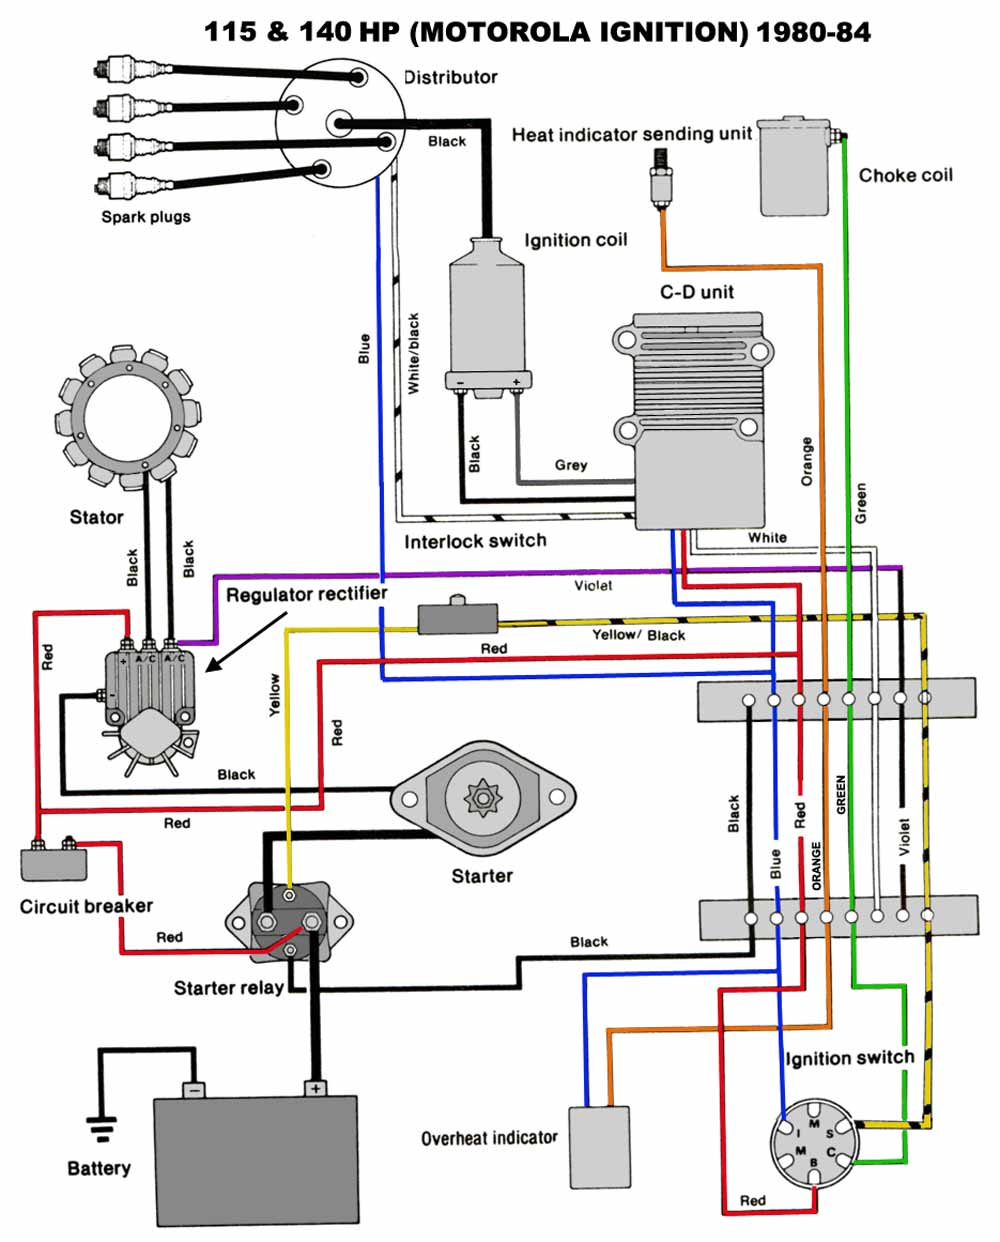 Terrific Chrysler Outboard Wiring Diagrams Mastertech Marine Wiring Digital Resources Lavecompassionincorg